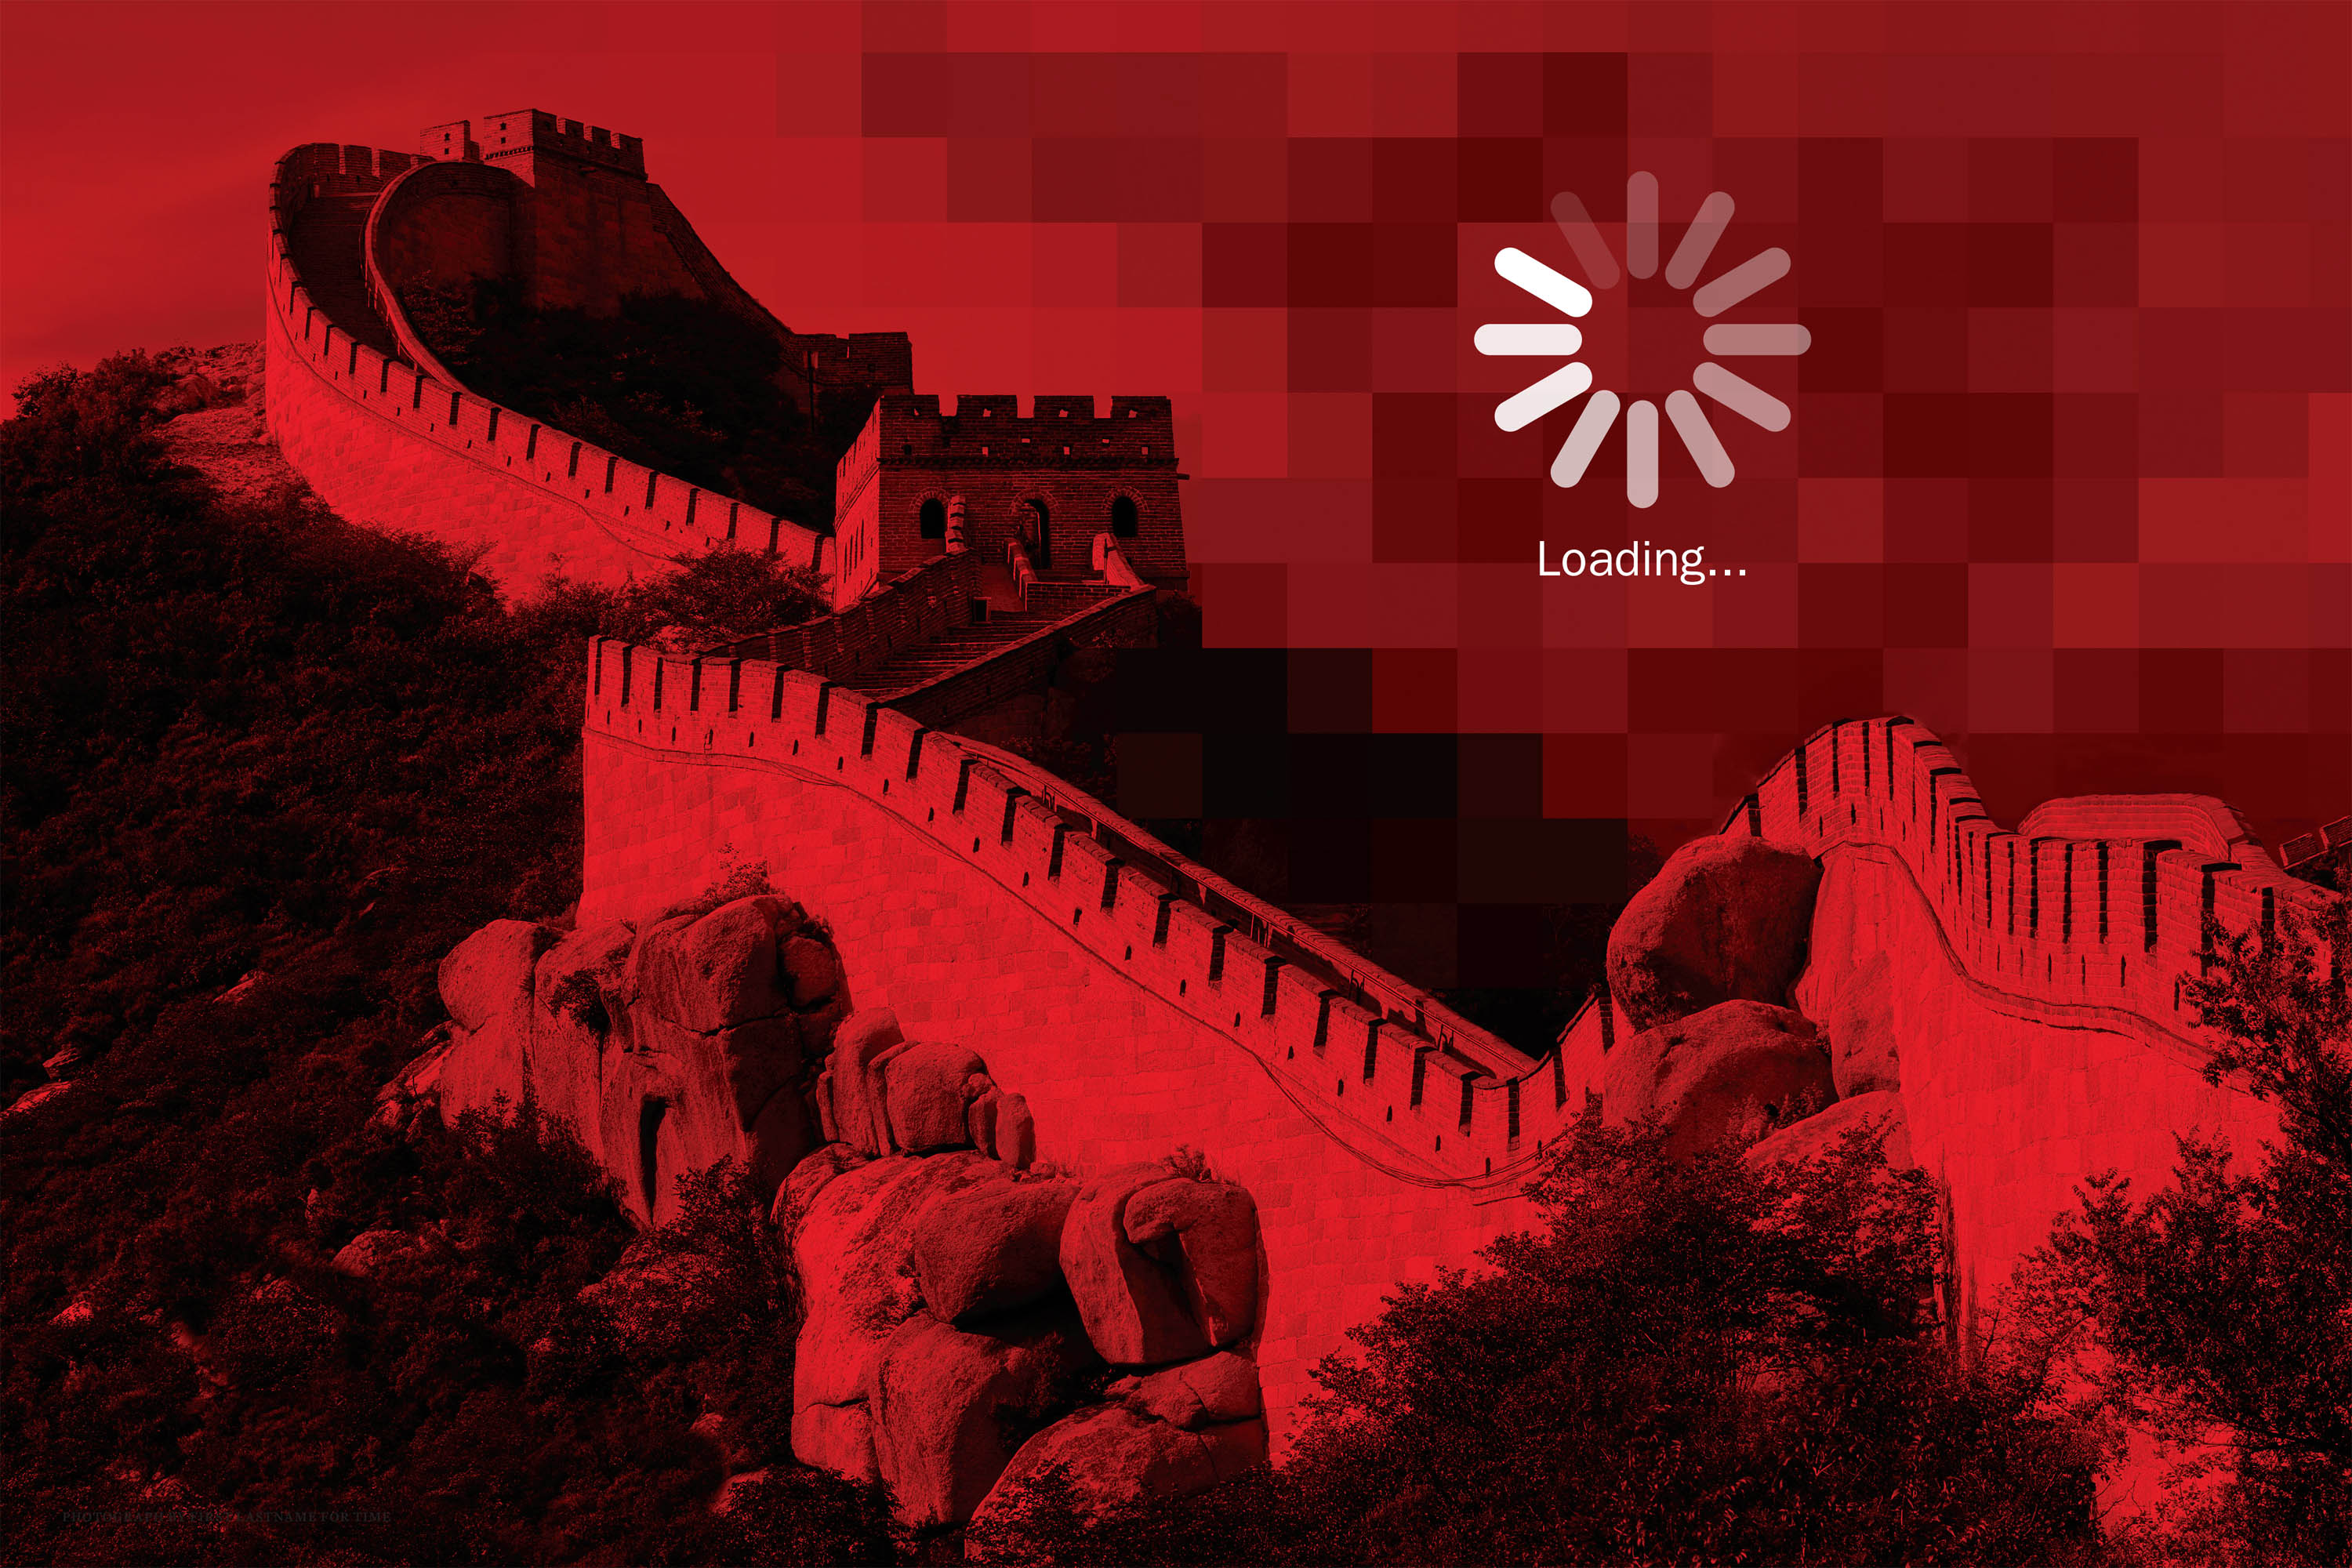 While the U.S. worries about Chinese hacking, Beijing has built a separate Internet for the 649 million Chinese online.